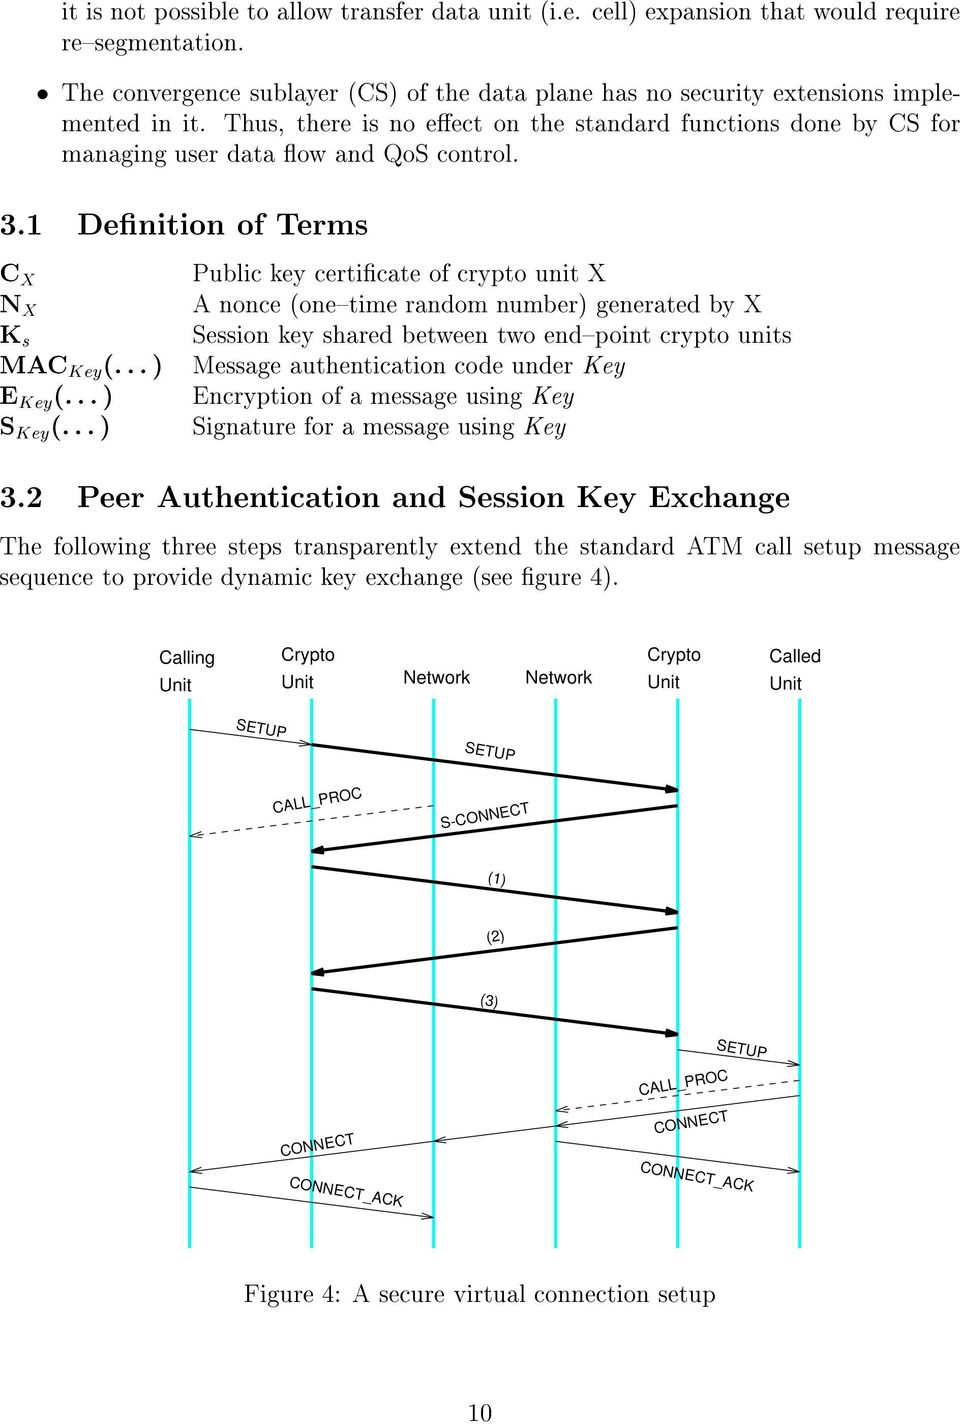 ..) Public key certicate of crypto unit X A nonce (one{time random number) generated by X Session key shared between two end{point crypto units Message authentication code under Key Encryption of a